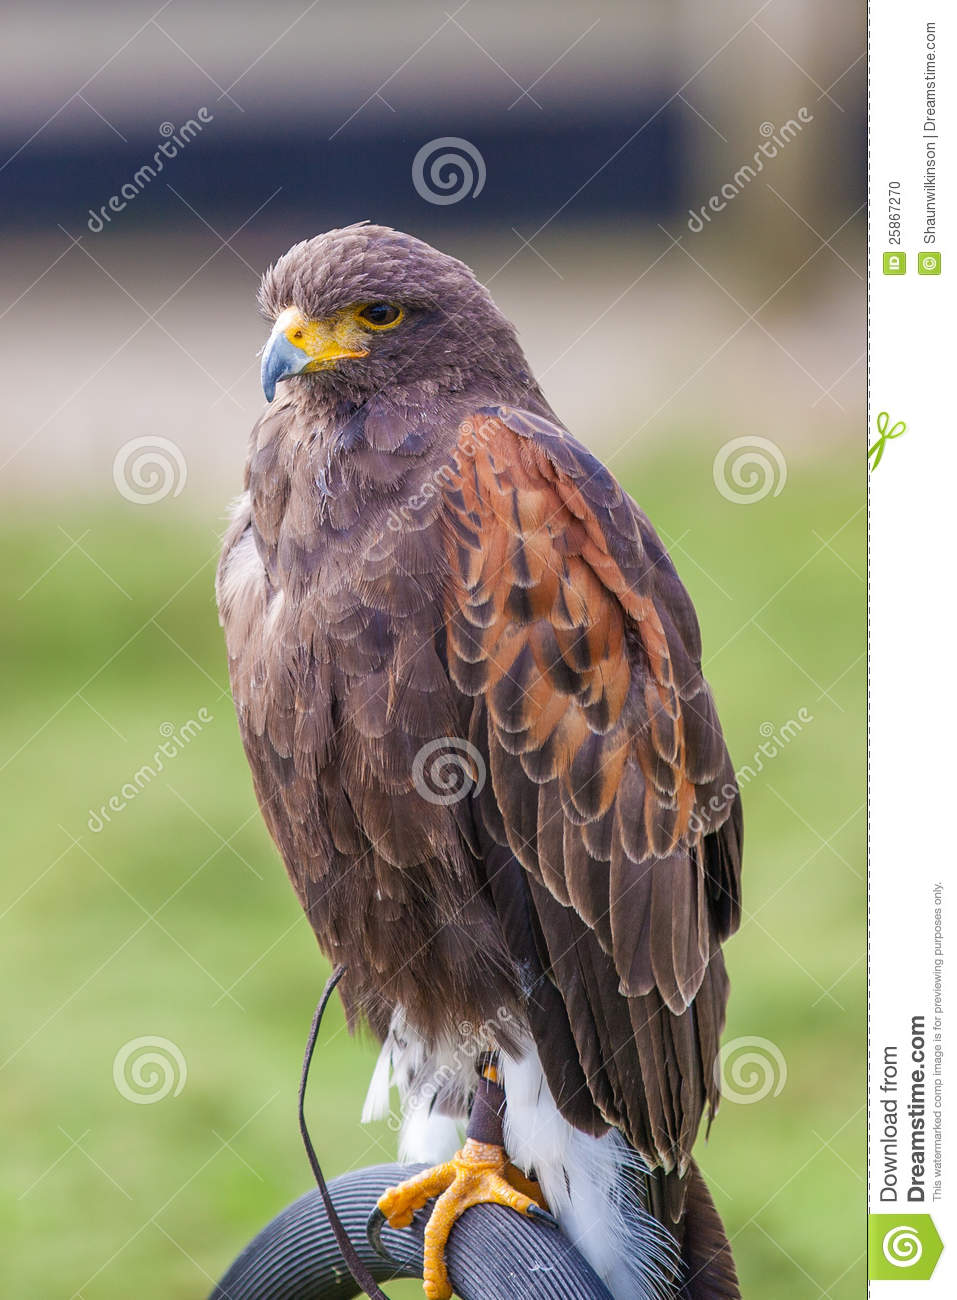 Hunting With Shot Harris Hawk Full Body Stock Photo. Image Of Hawk, Shot